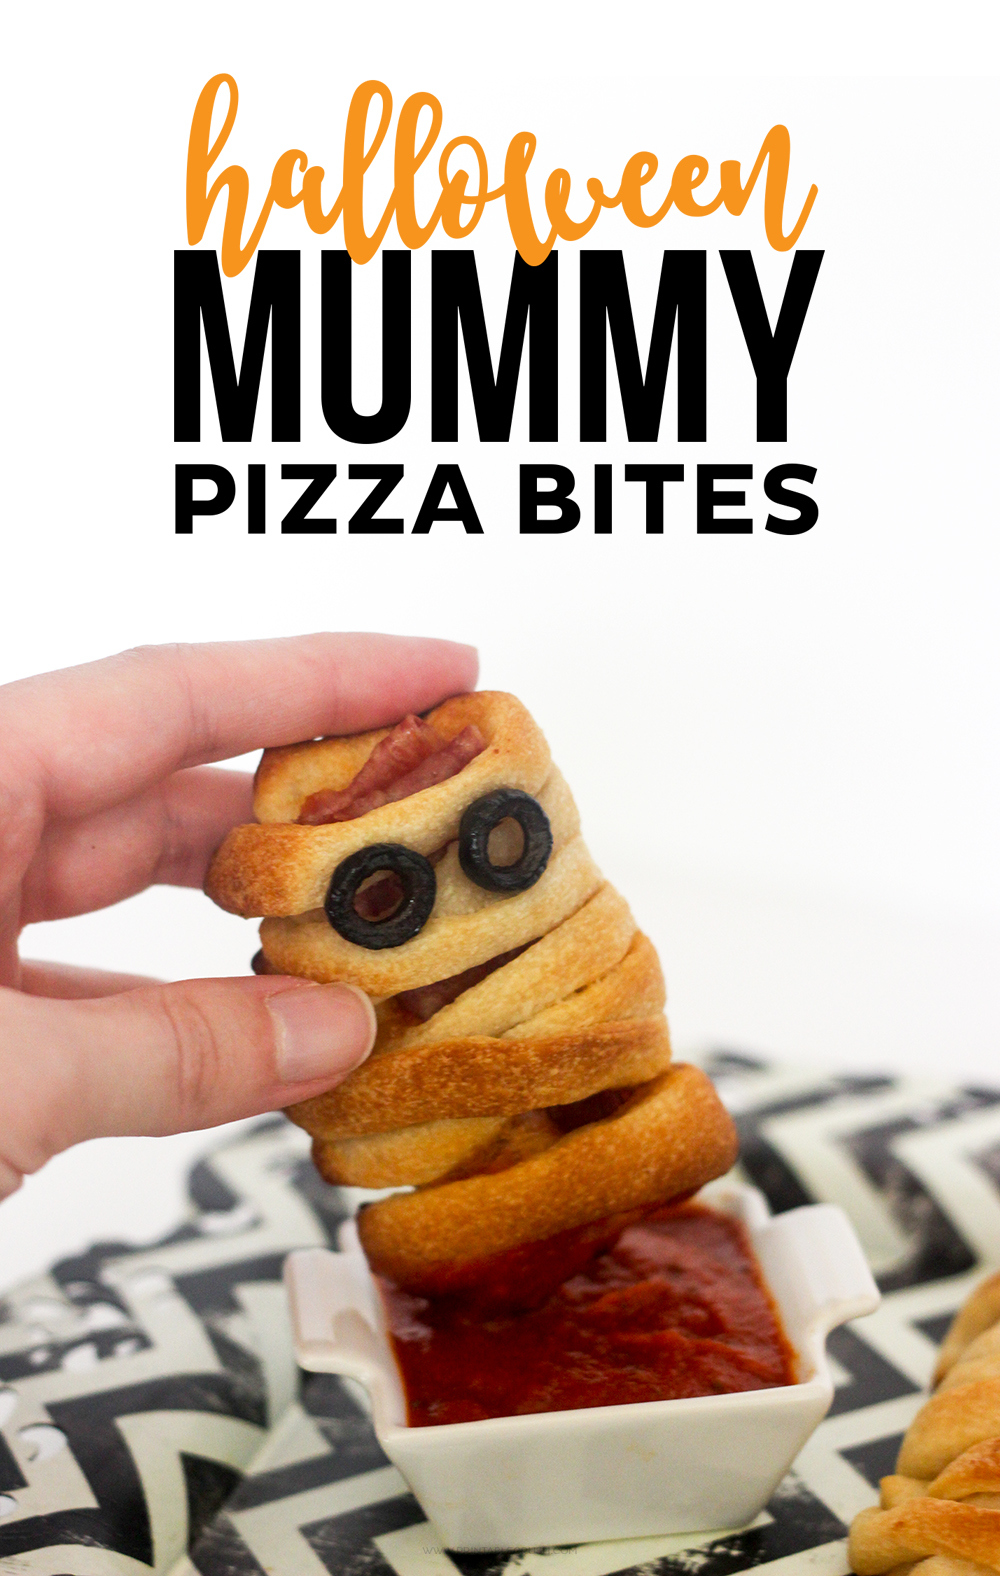 Halloween Pizza Mummy Bites